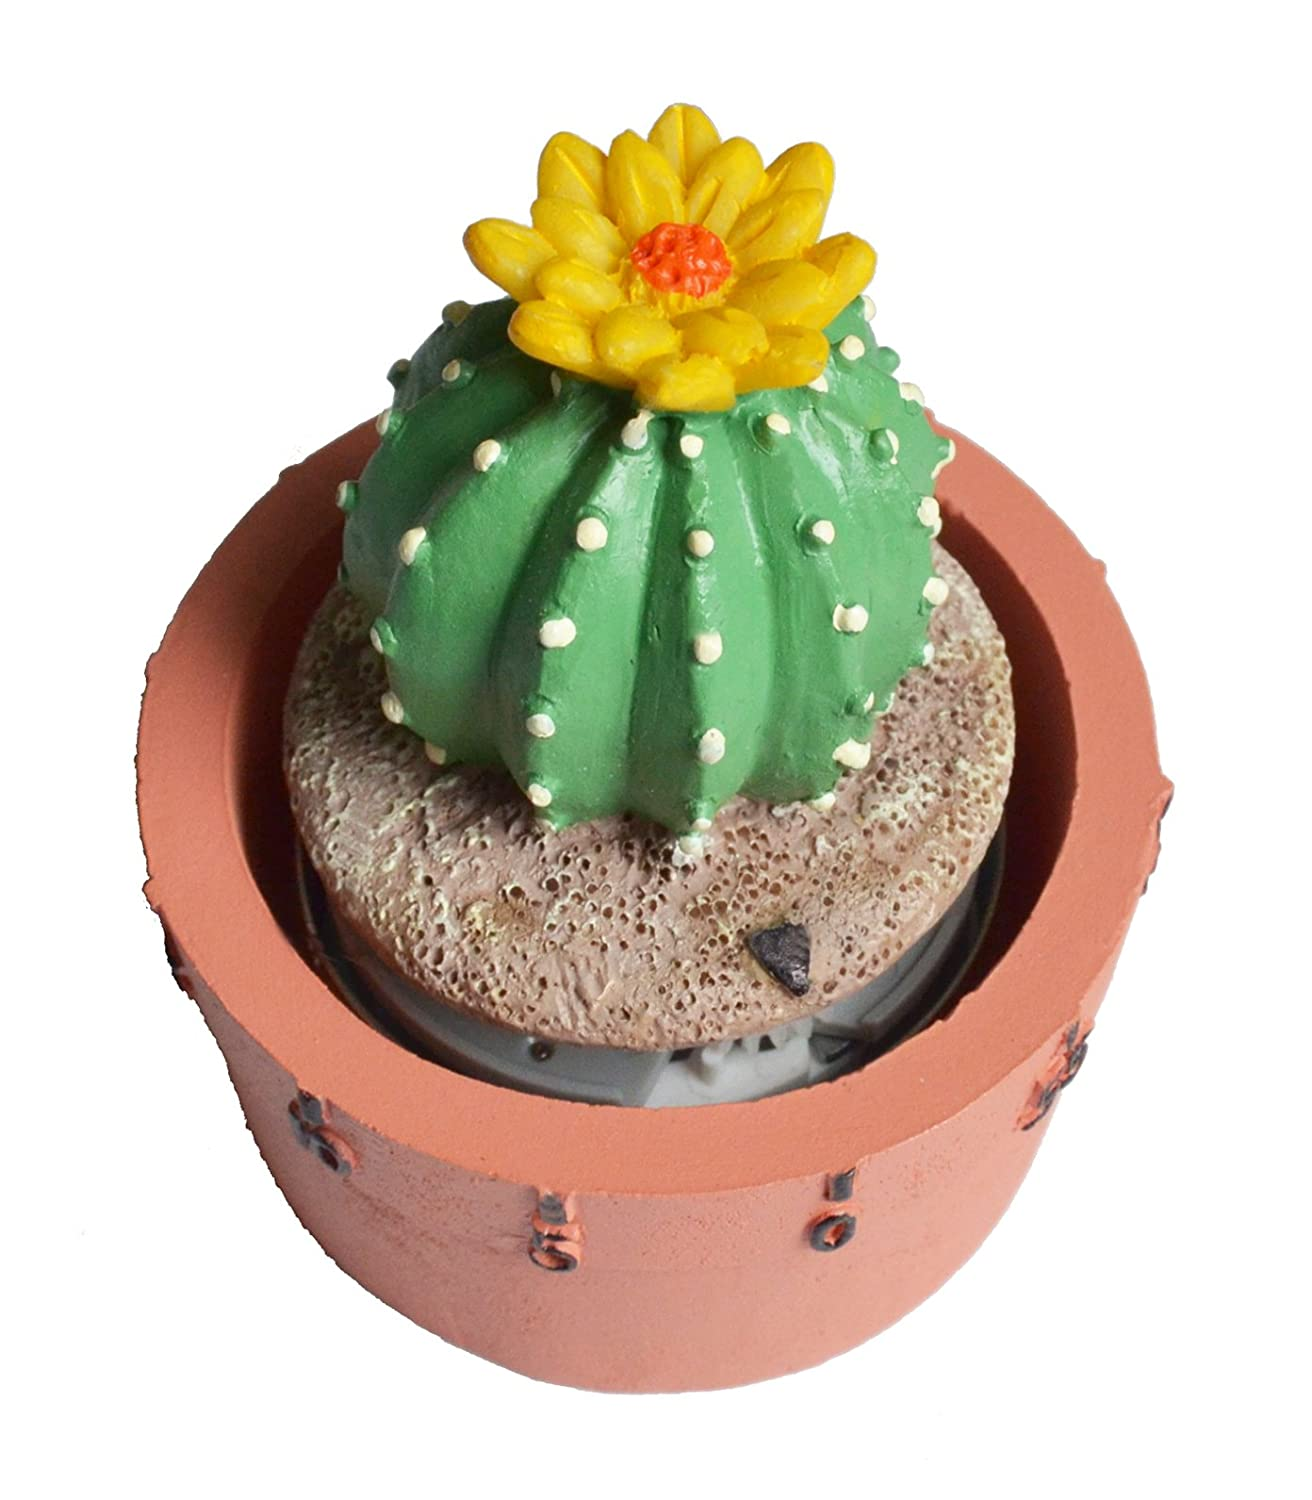 GIFTME 5 Cactus Kitchen Timer Cute Timer(Ball Cactus) T60B